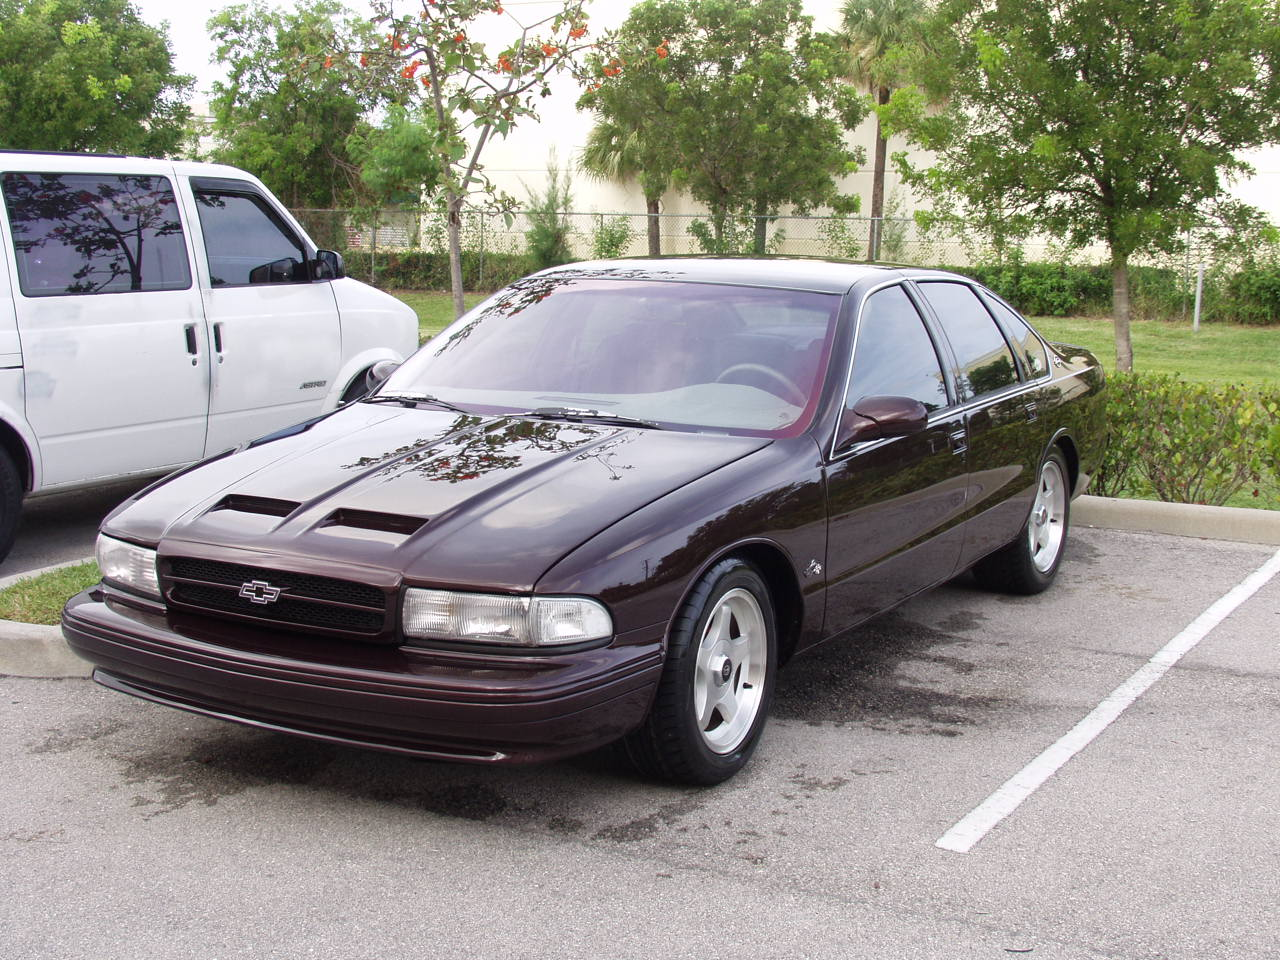 1996 impala ss for sale randyb consulting blog. Black Bedroom Furniture Sets. Home Design Ideas